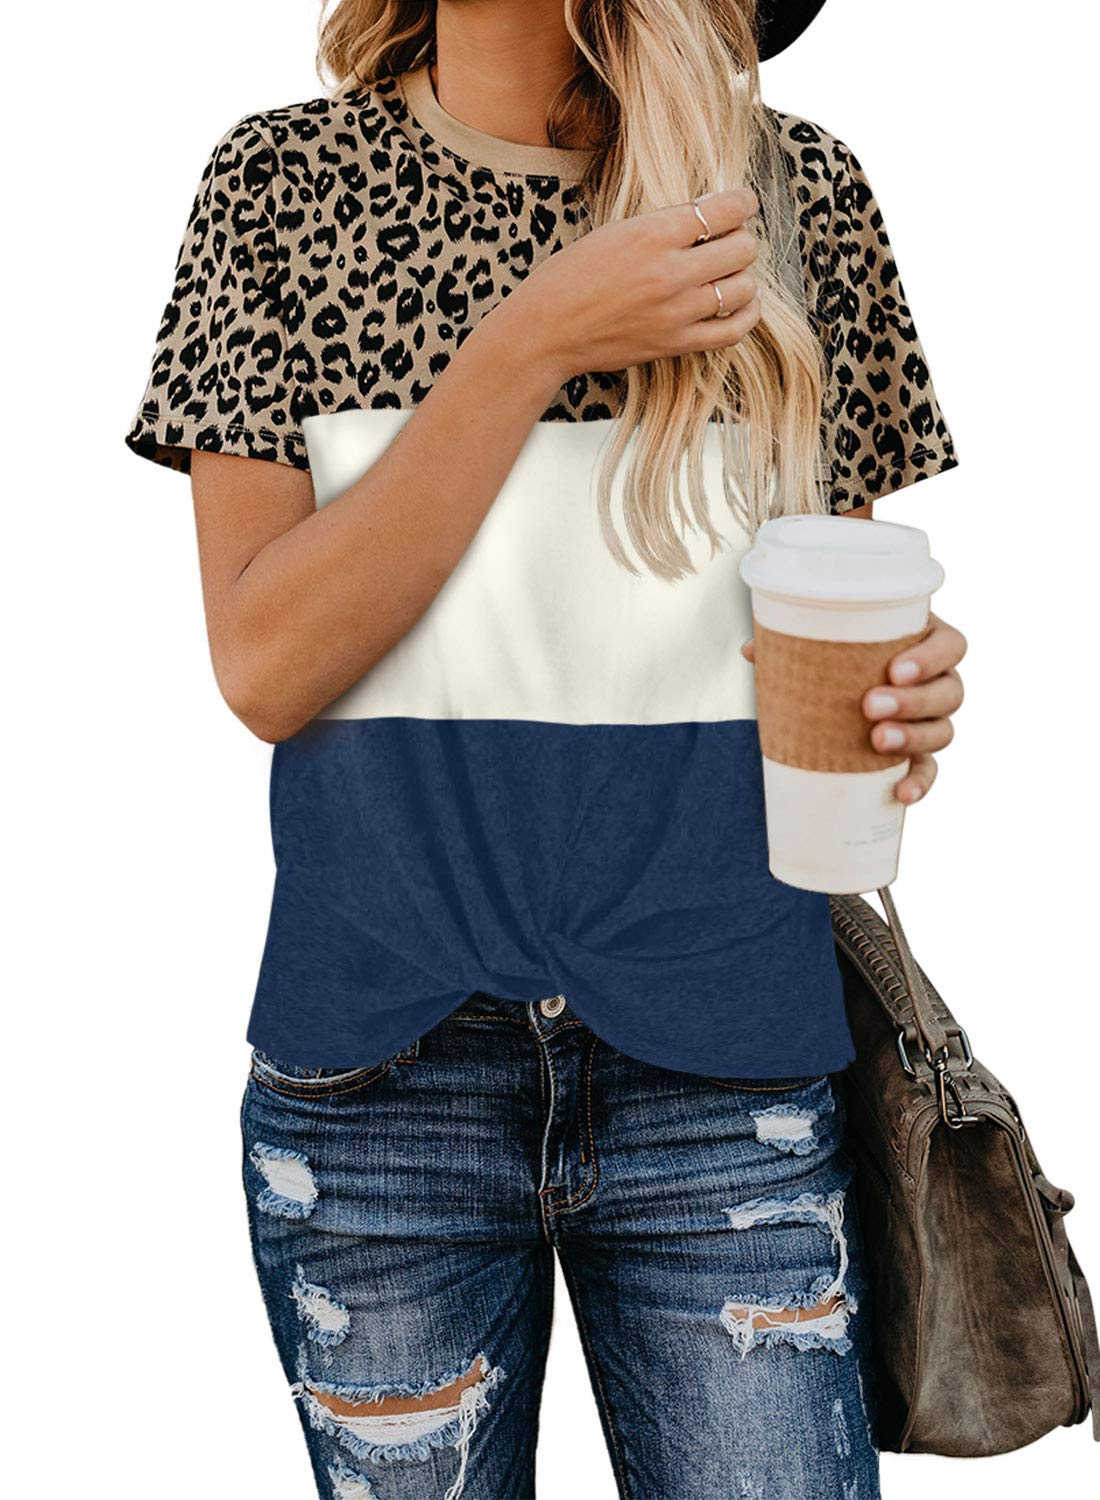 EVALESS Women's T Shirt Color Block Leopard Tops Short Sleeve Casual Round Neck Blouse Tees